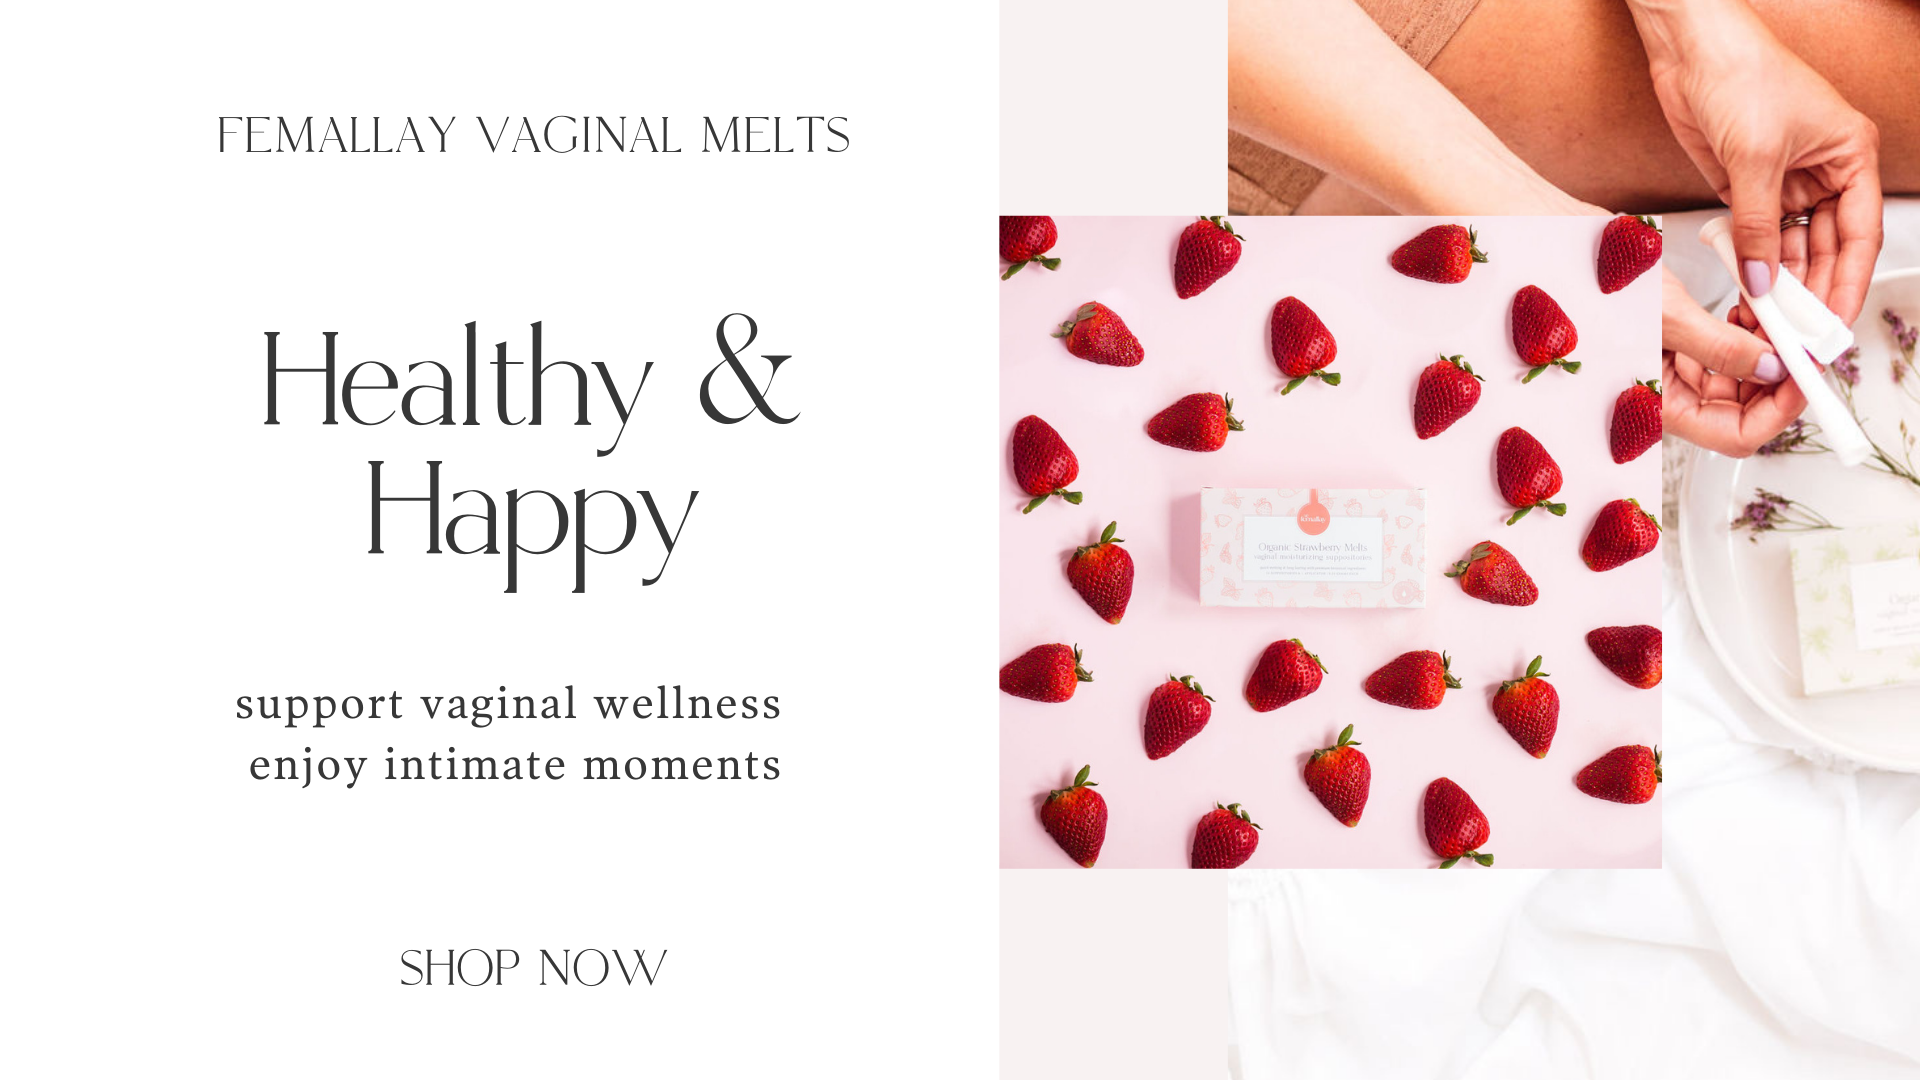 vaginal melts for sexual health and pleasure